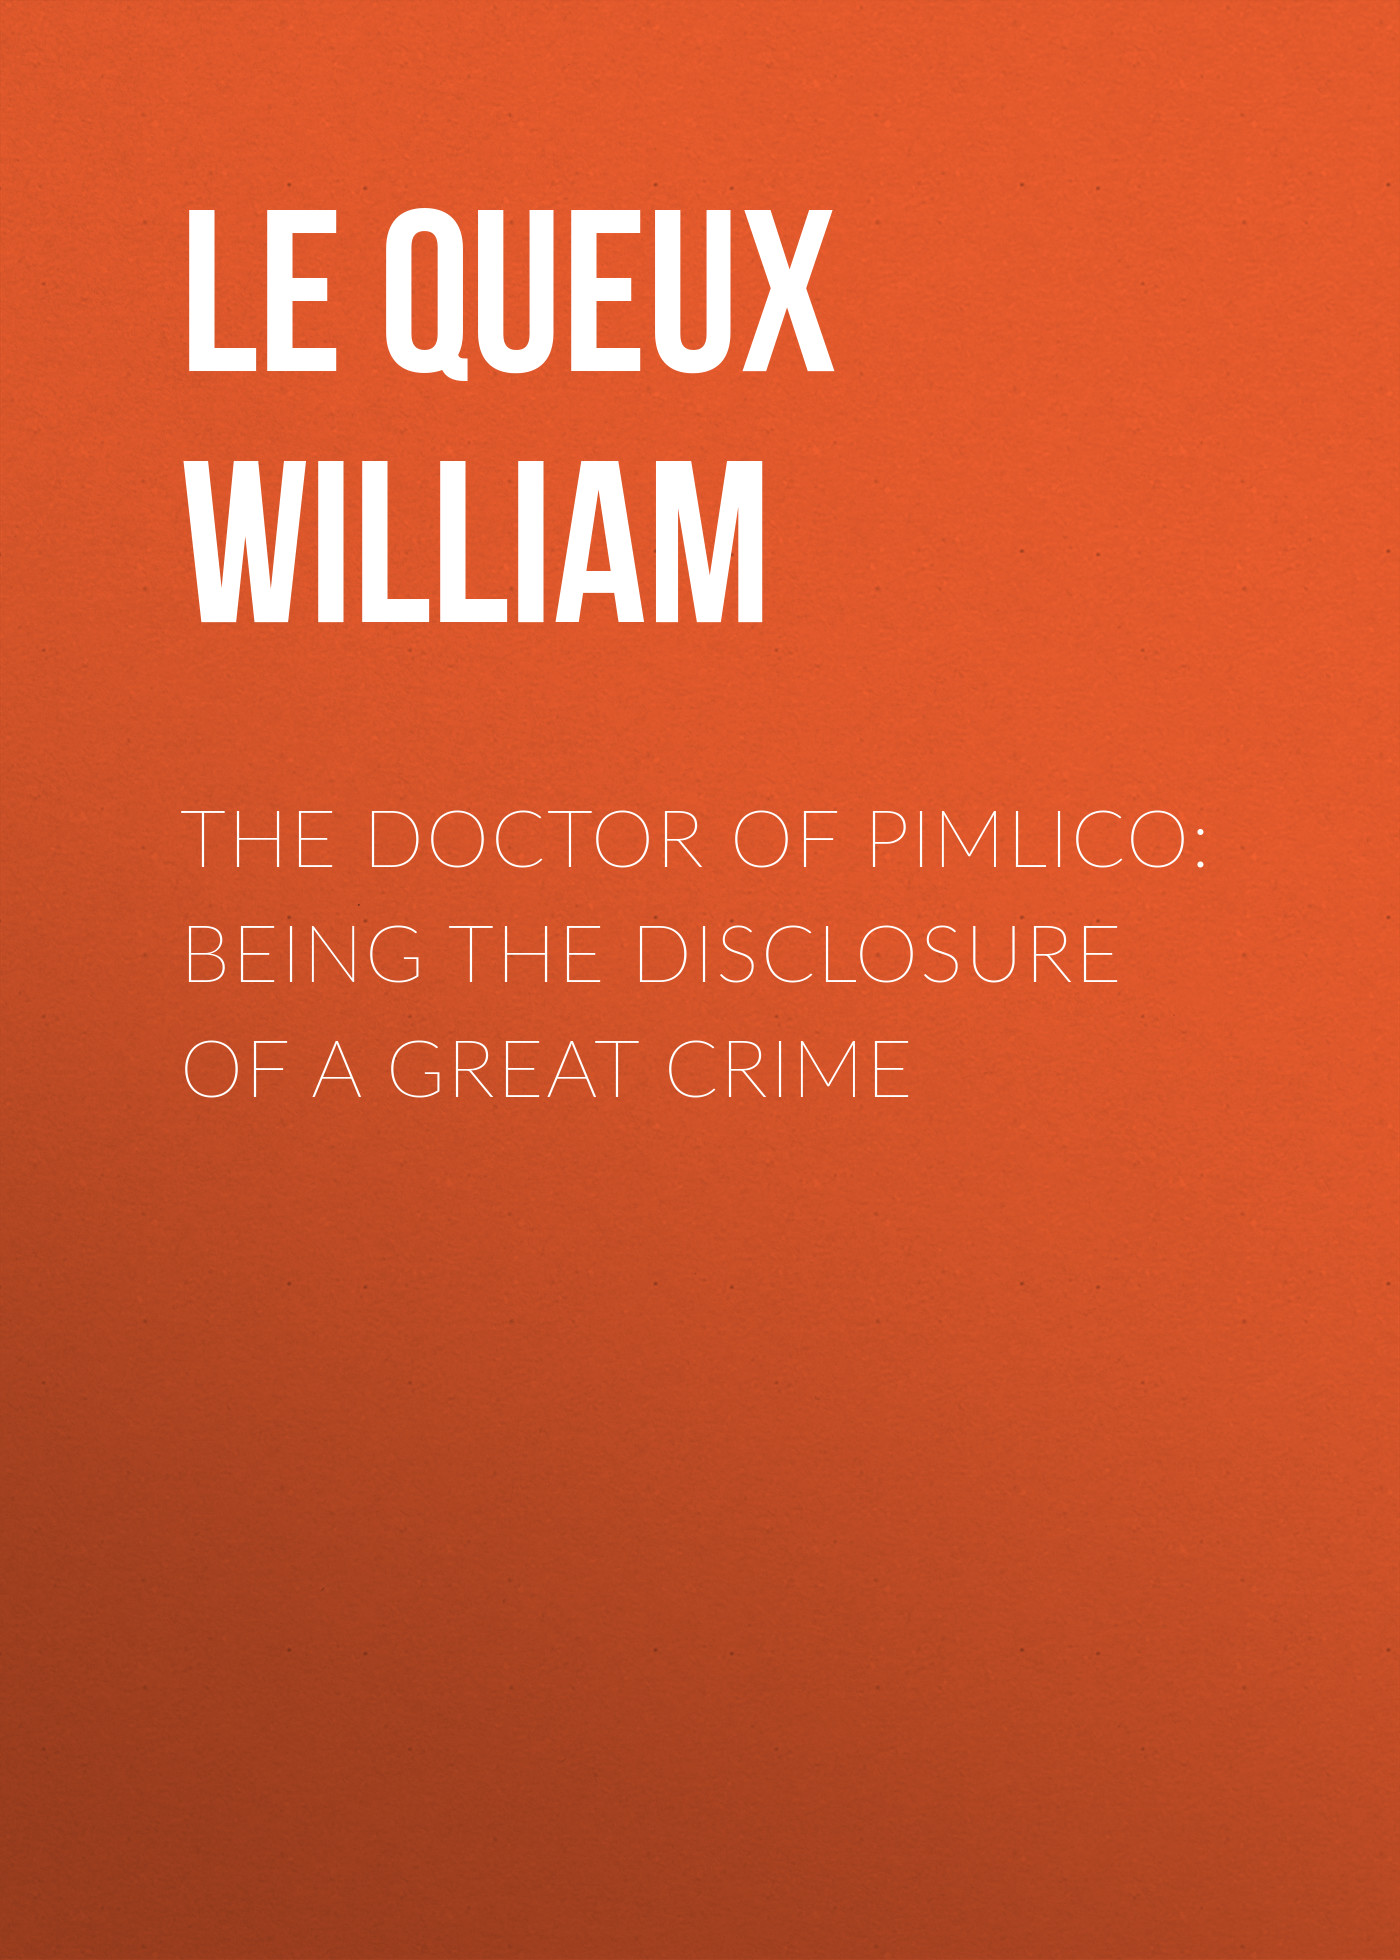 Le Queux William The Doctor of Pimlico: Being the Disclosure of a Great Crime цена